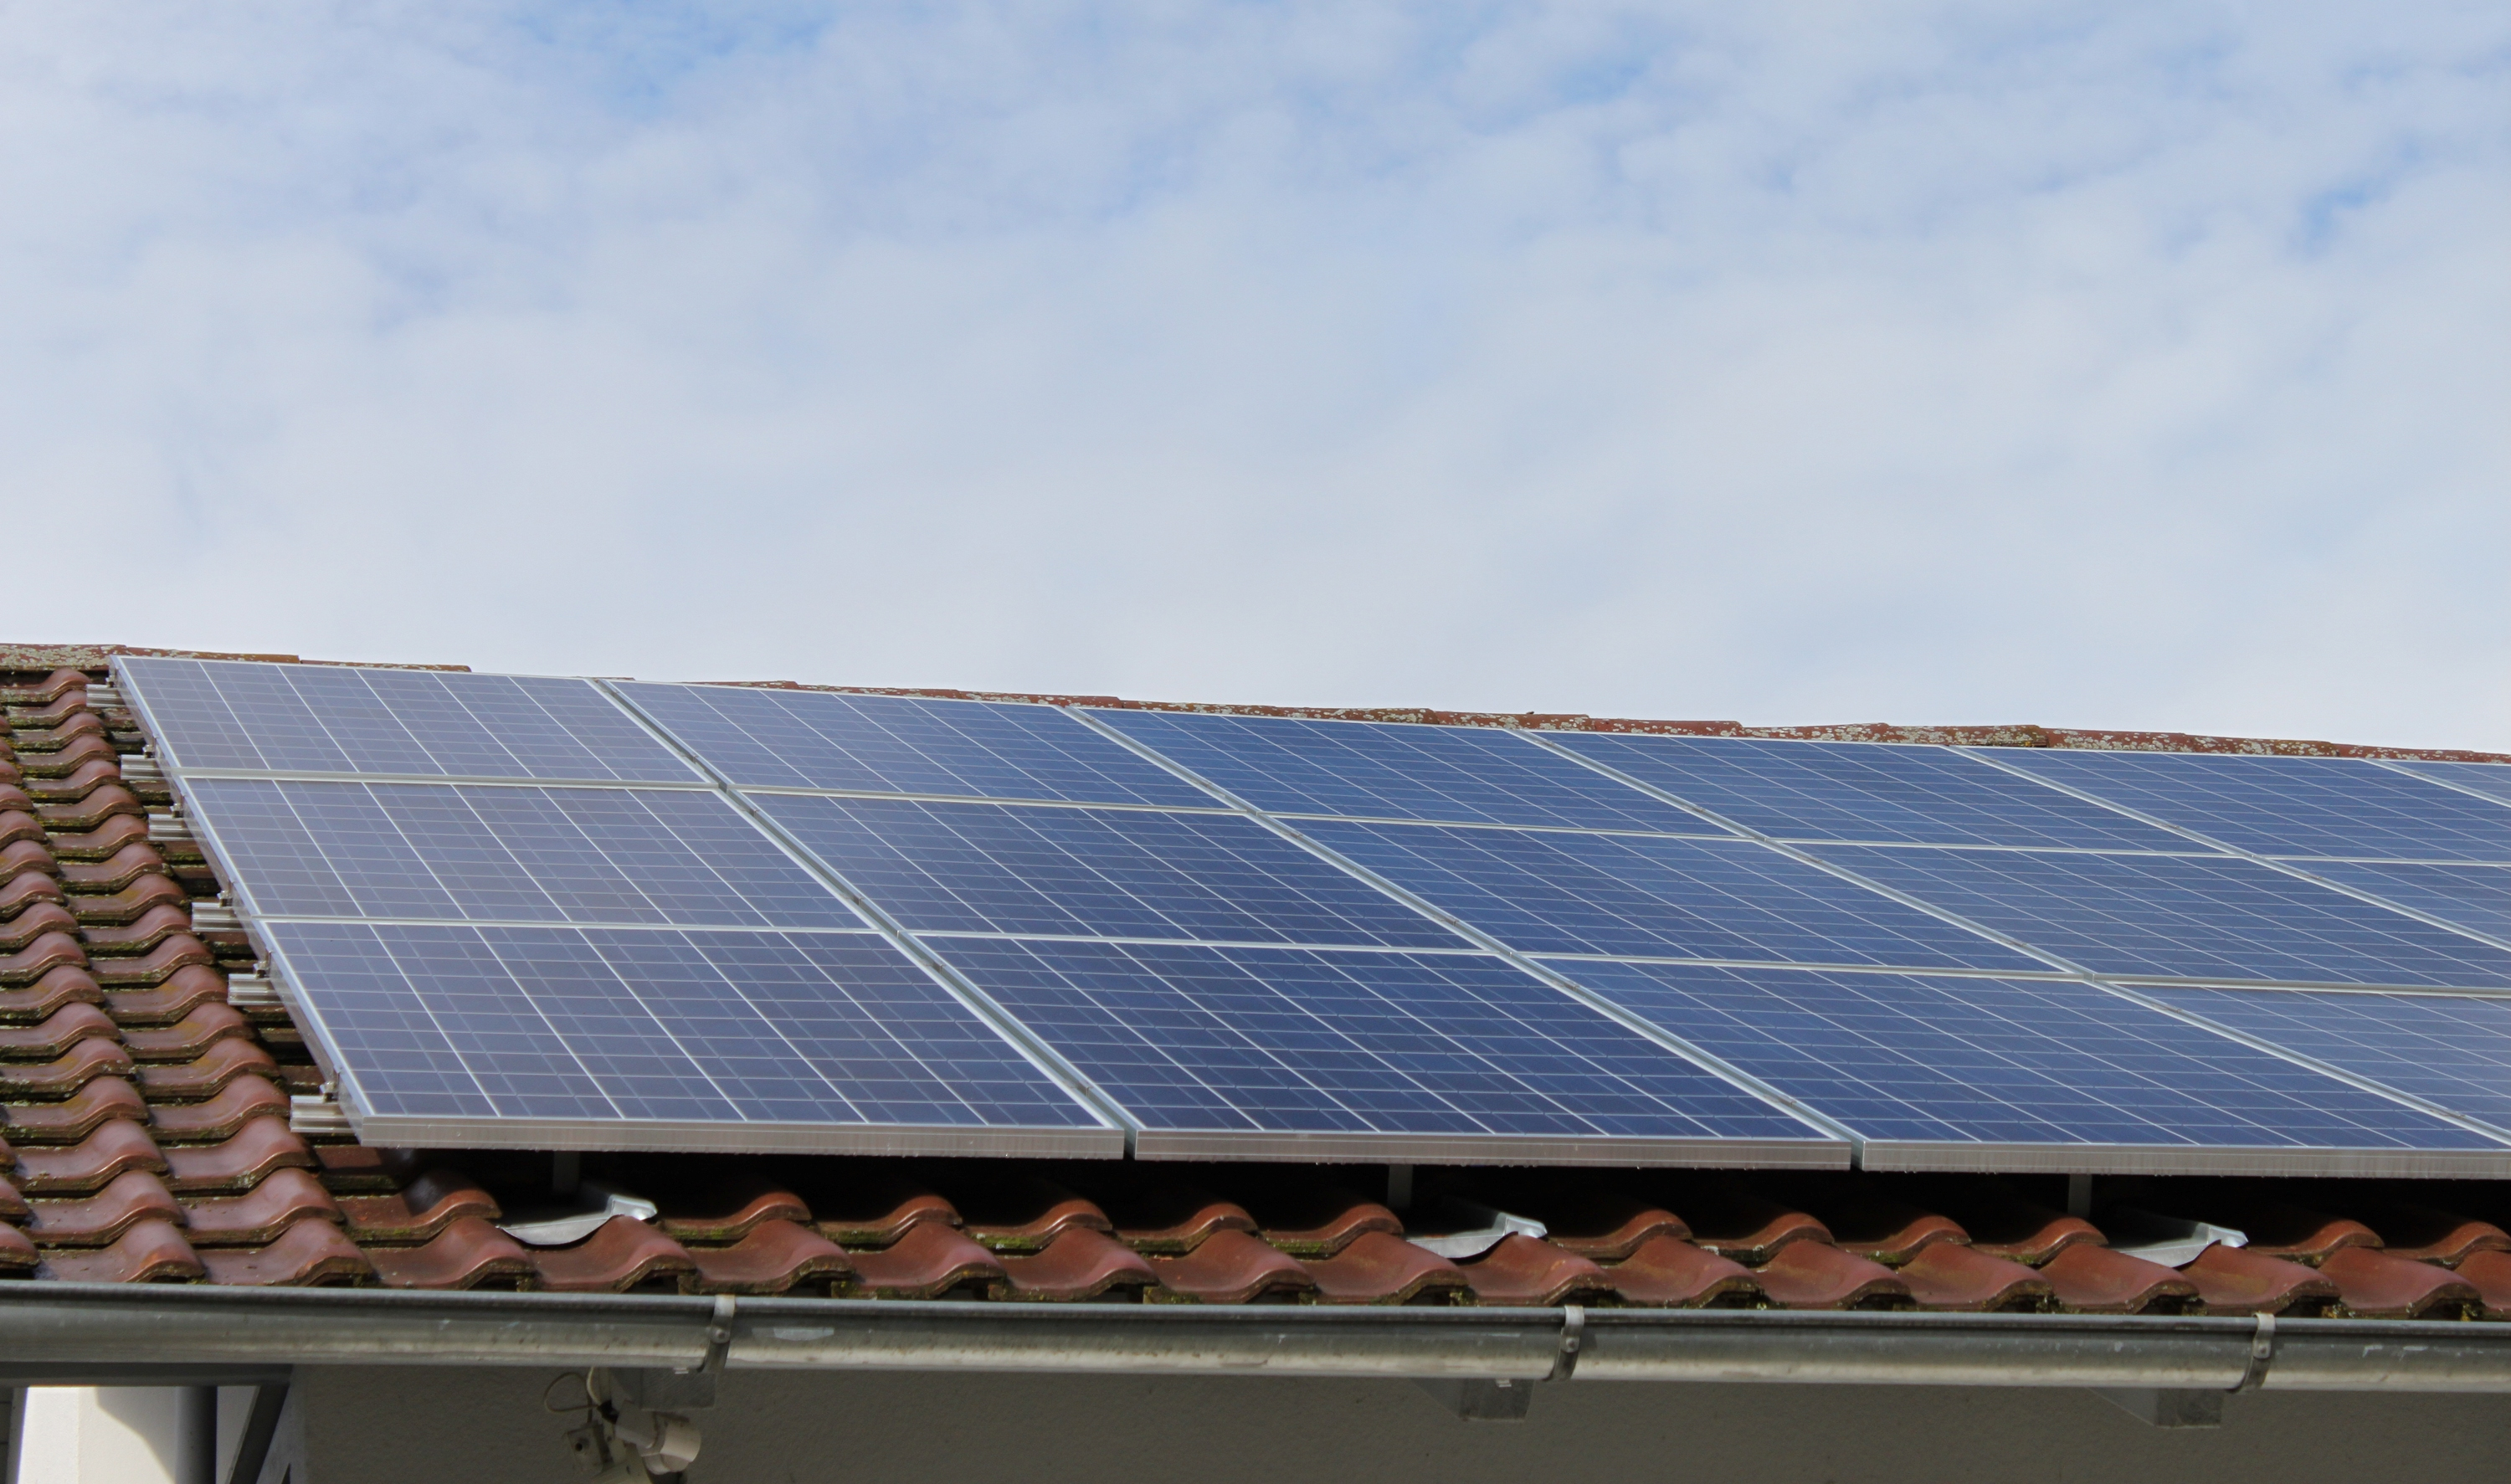 On Grid Rooftop 1.84 kWp